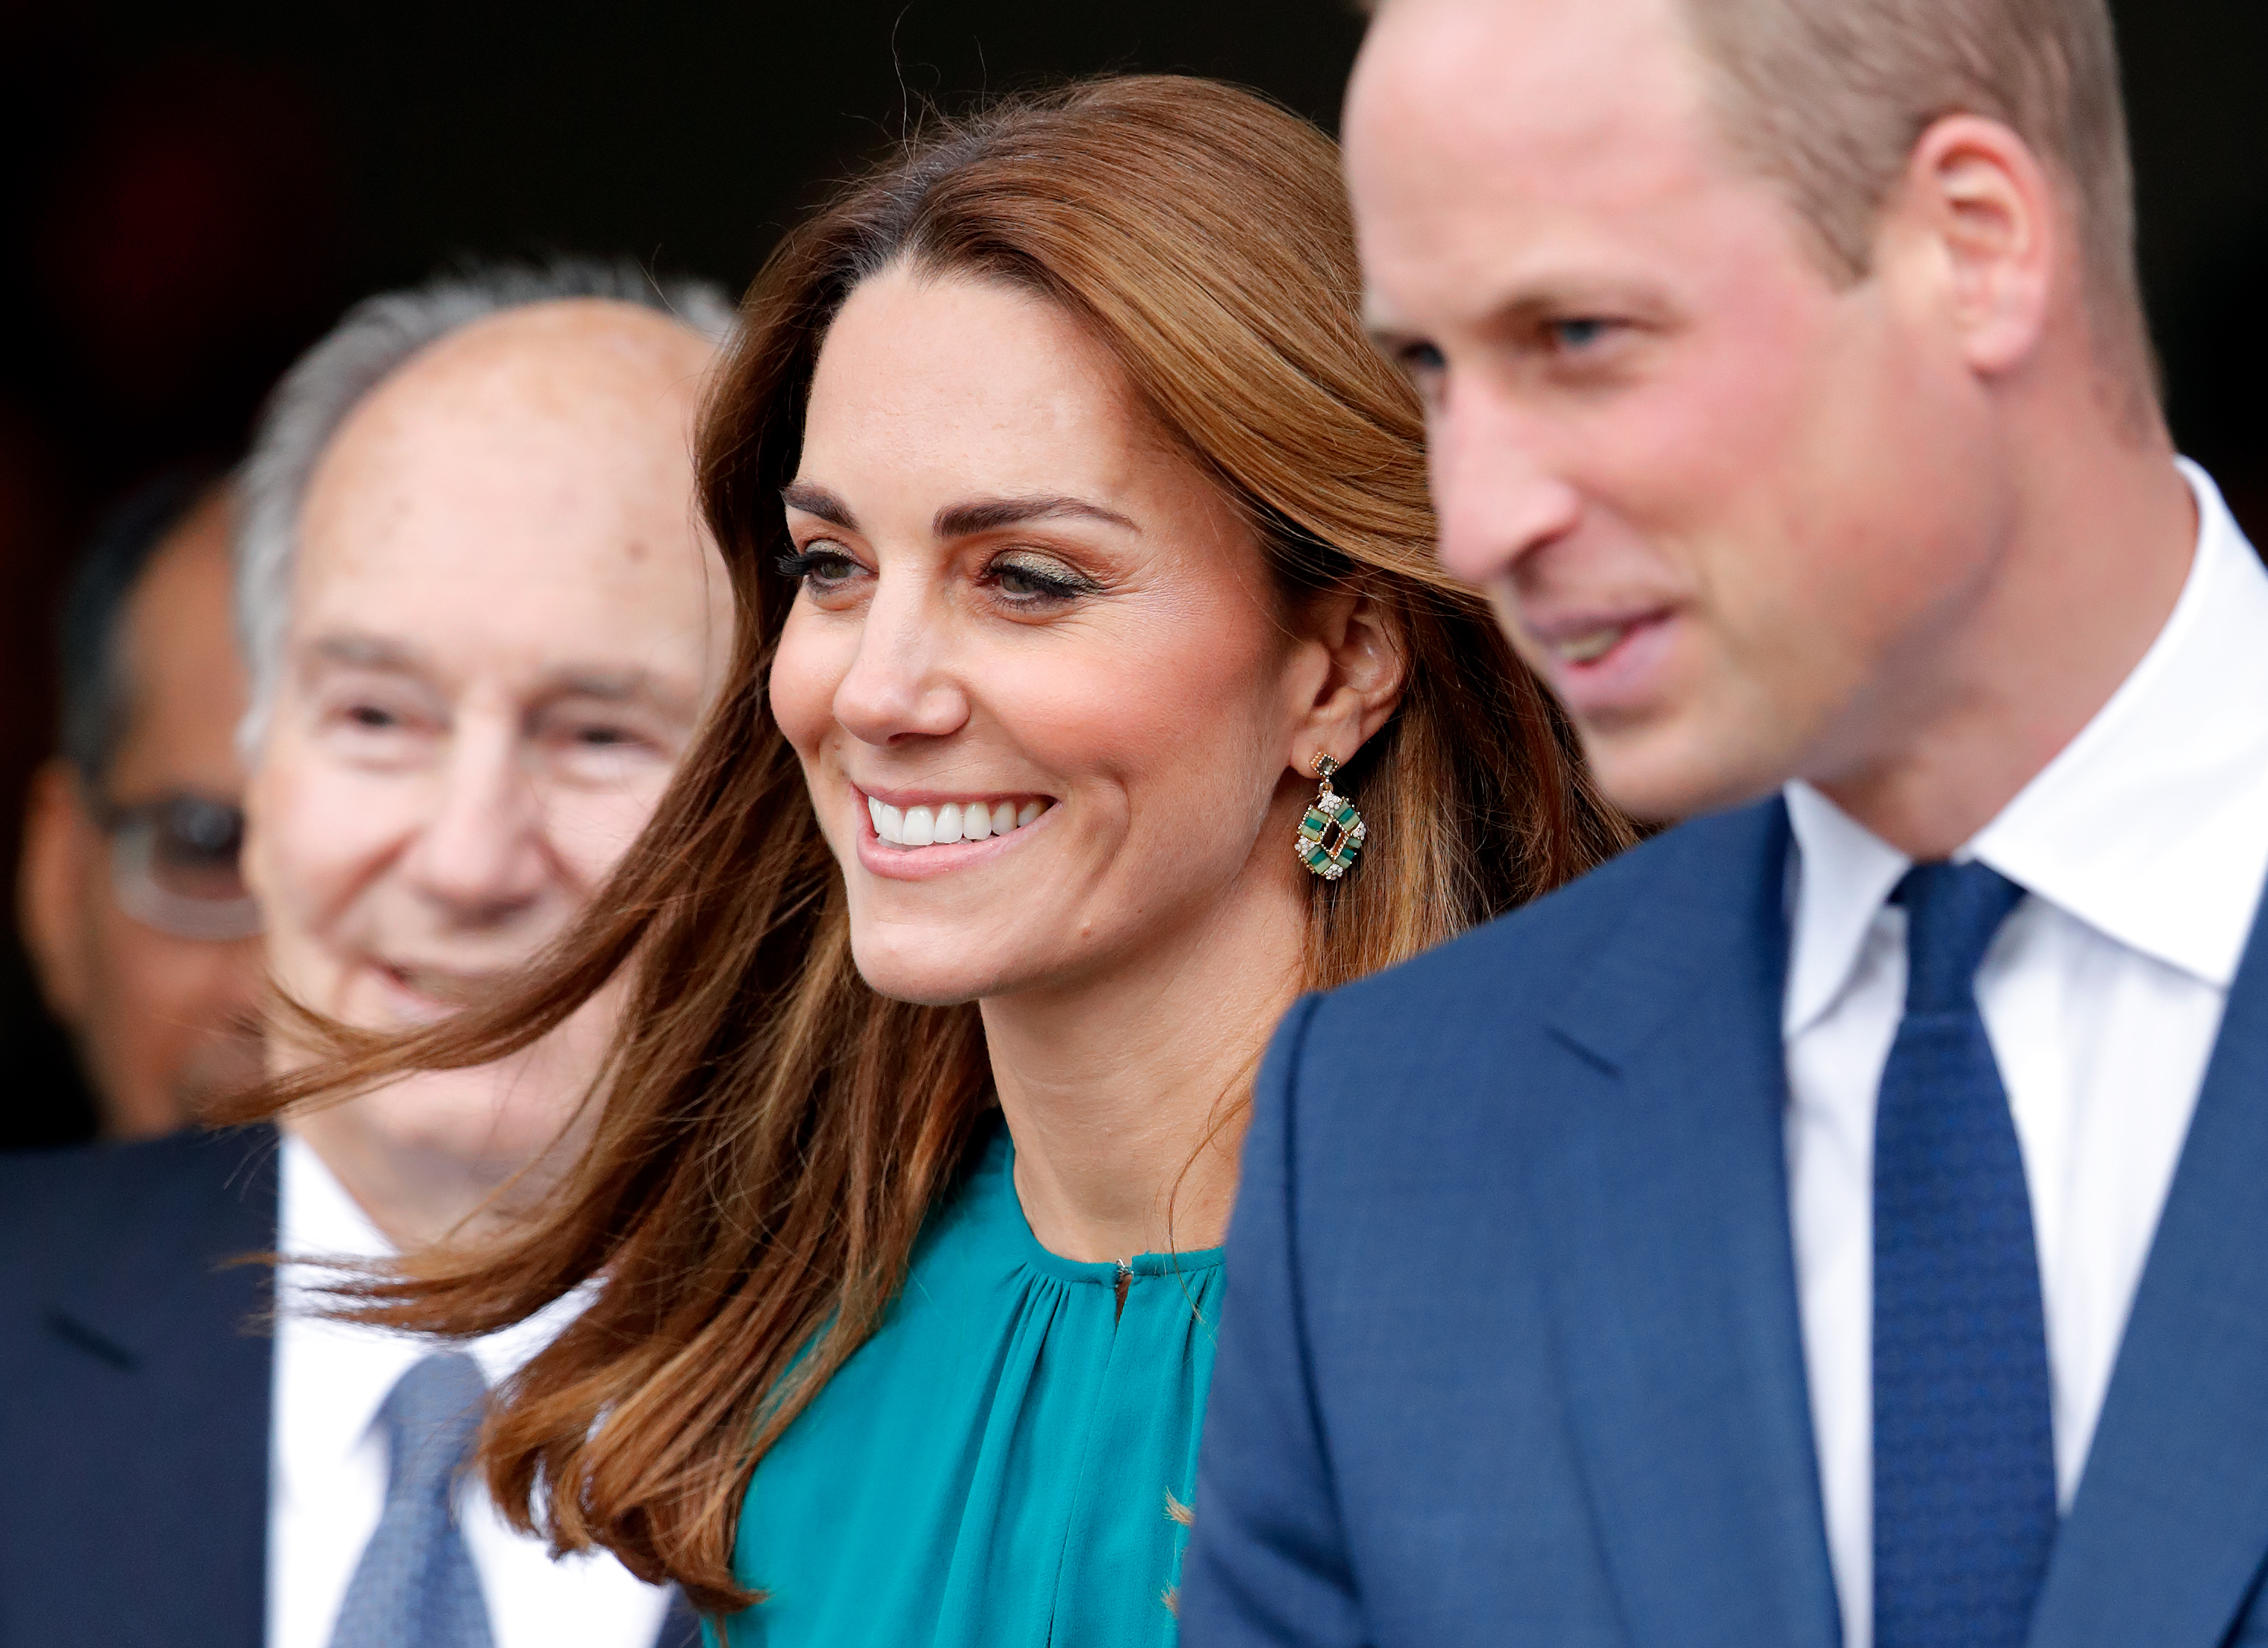 Prince William and Kate Middleton have released behind the scenes photos ahead of their tour